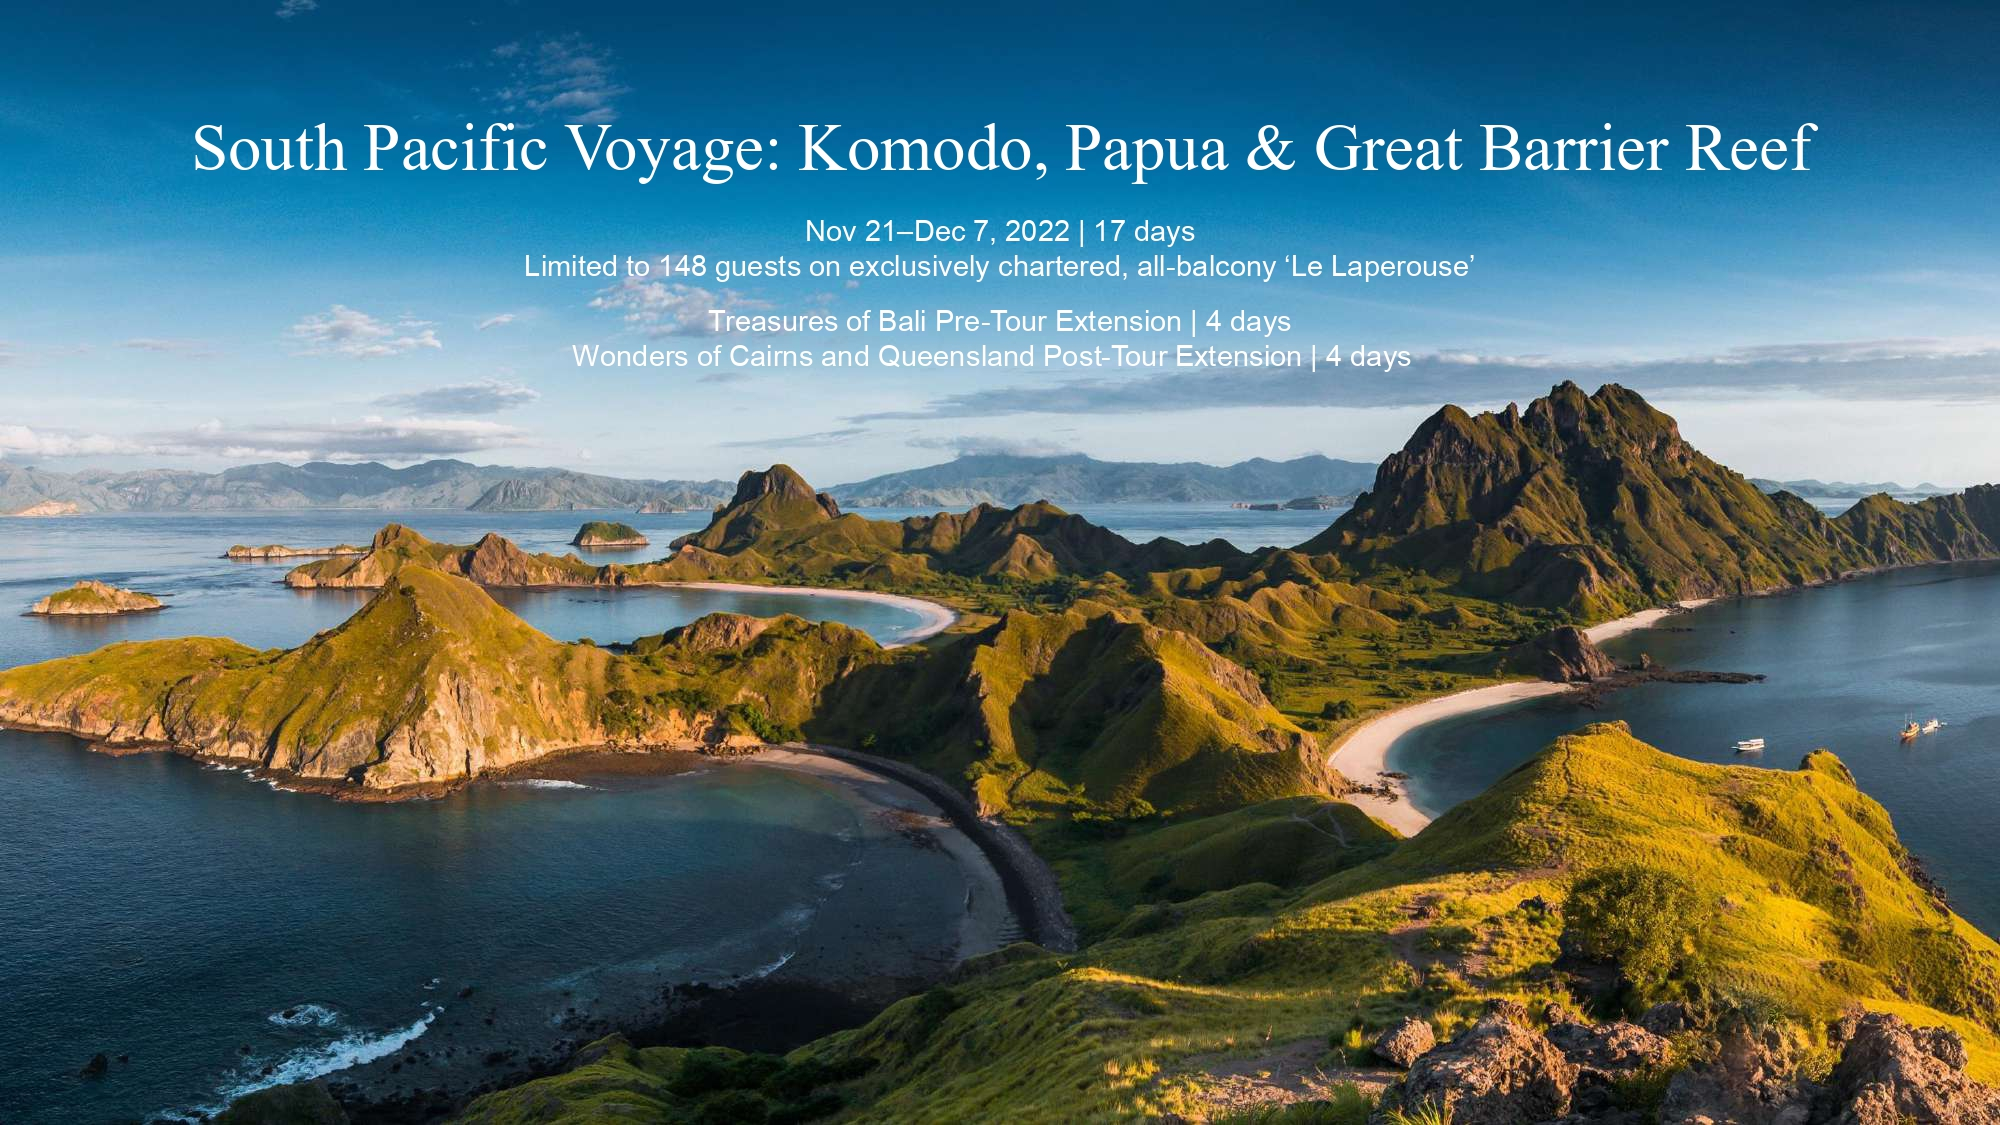 2022, 21 Nov to 7 Dec - South Pacific Voyage, Papua & Great Barrier Reef_page-0001